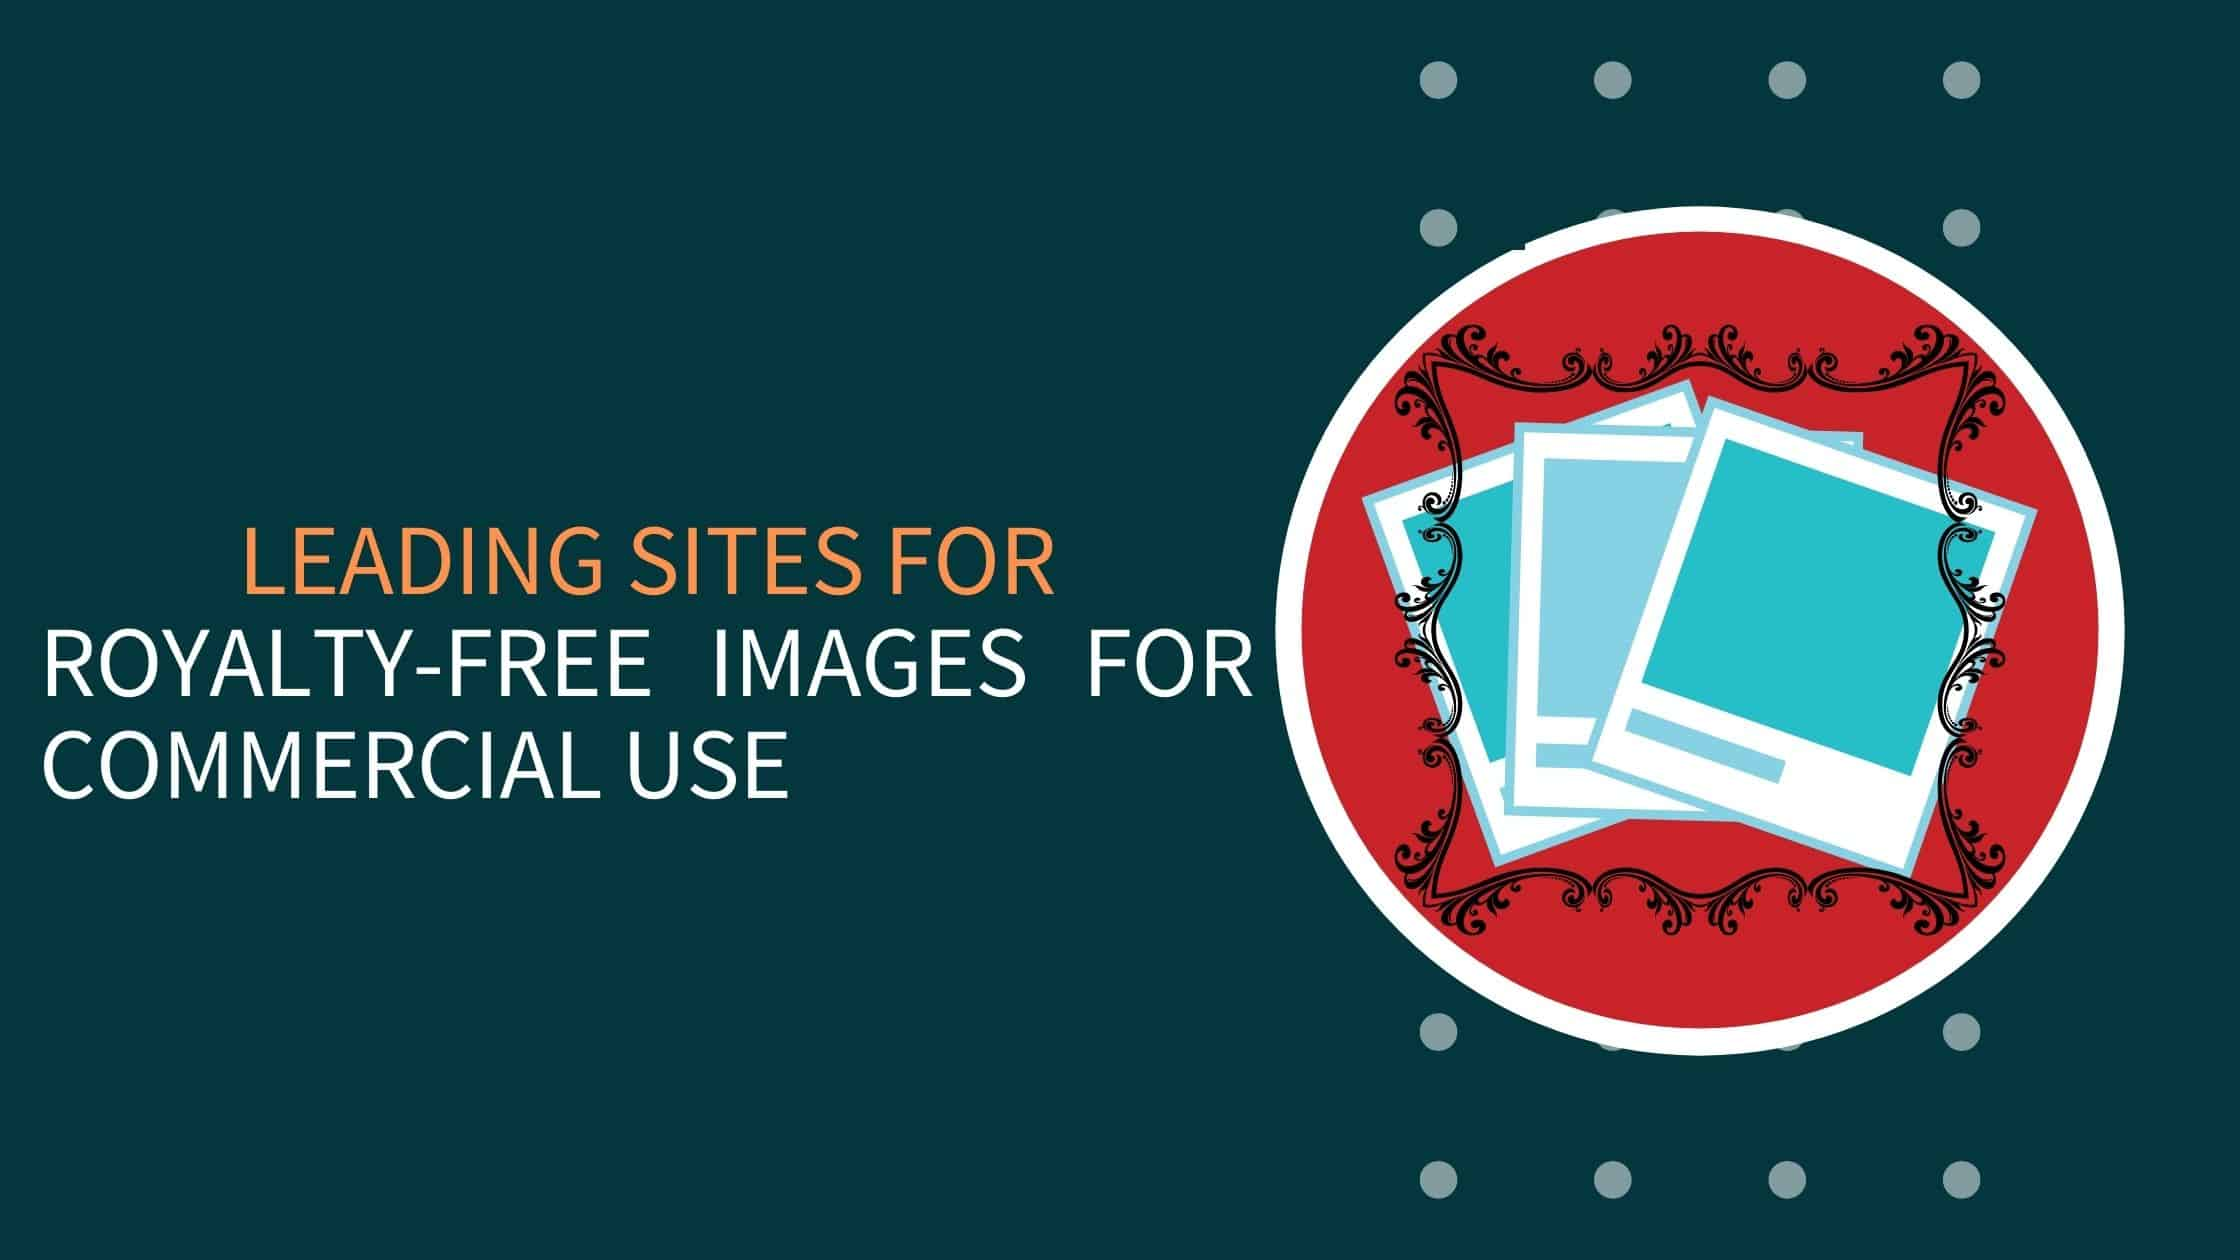 11 Leading Sites For Royalty-Free Images For Commercial Use